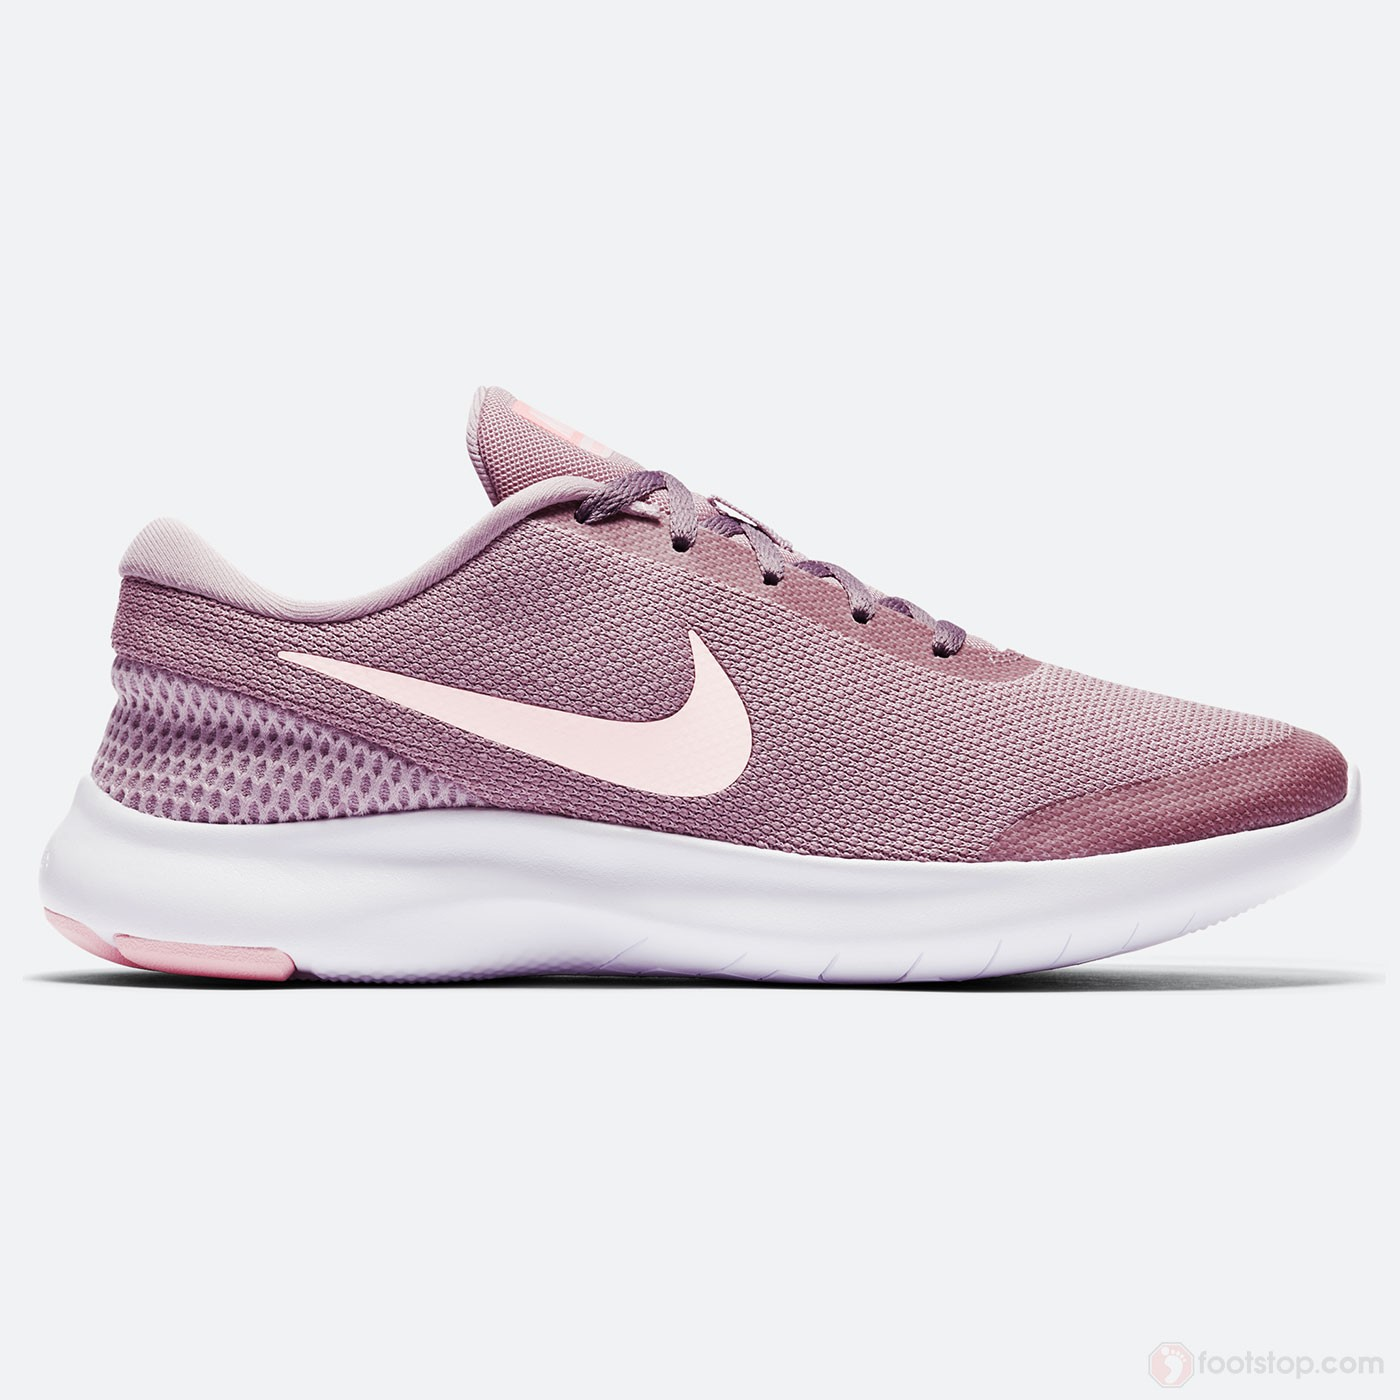 Nike Flex Experience Rn 7 (Rose/Artic Punch) - Femme 908996 600